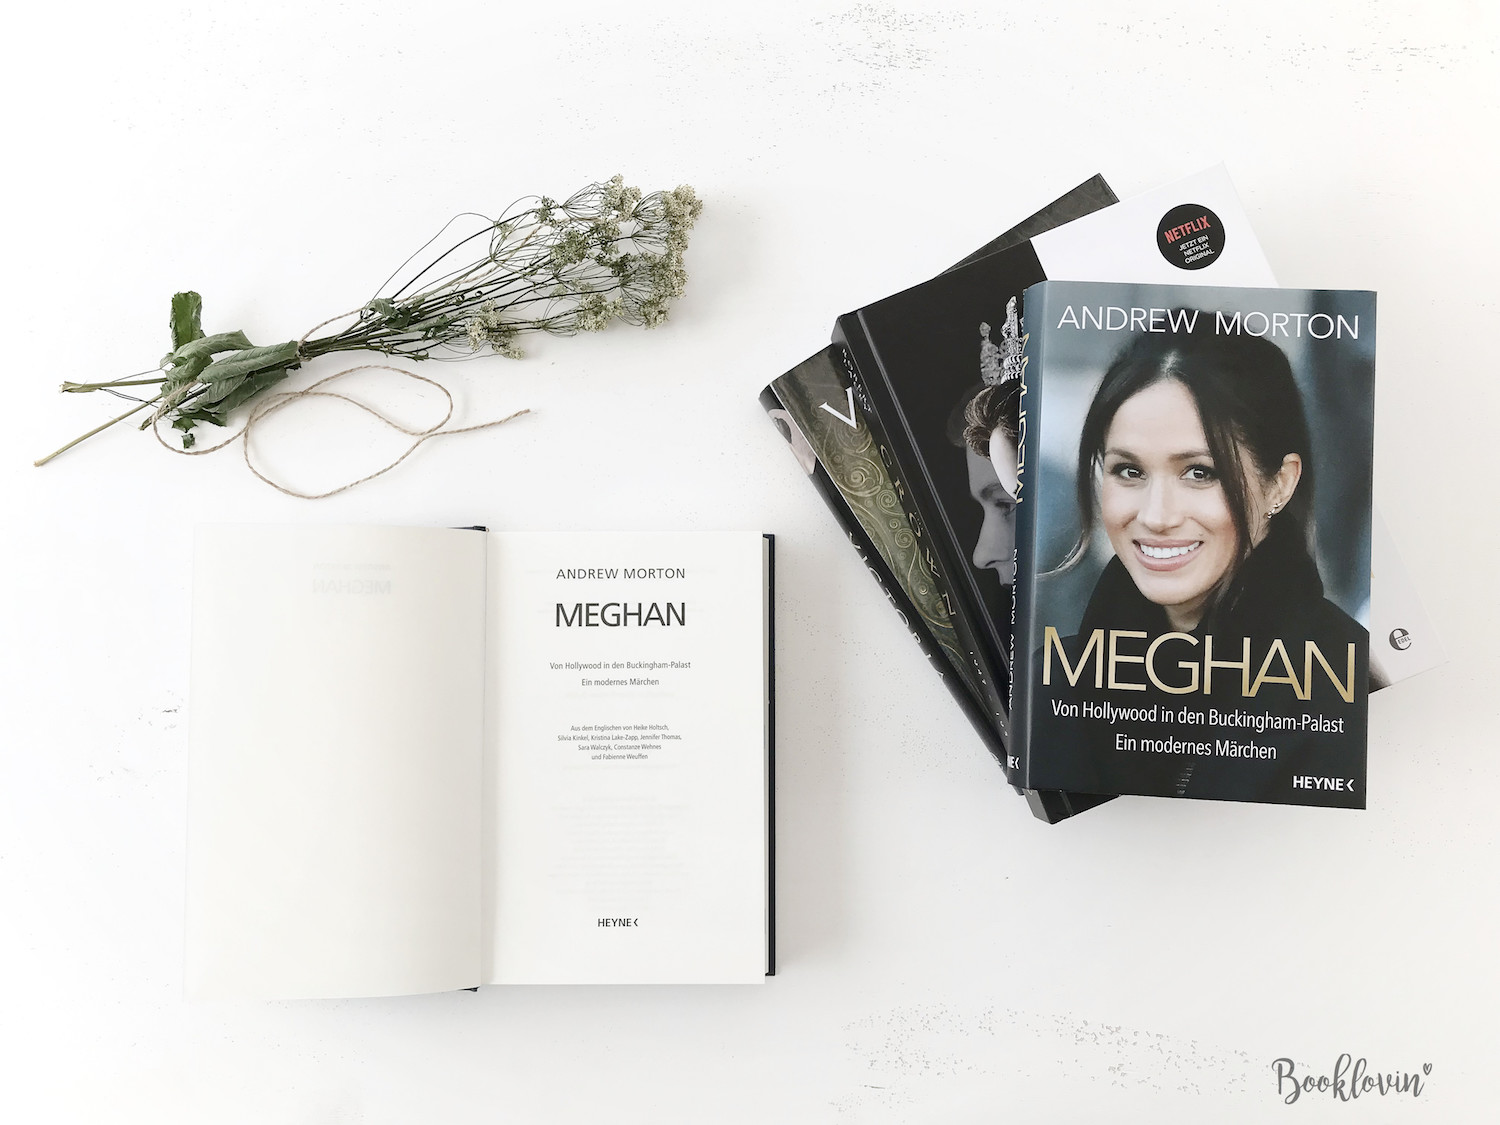 Meghan. Von Hollywood in den Buckingham Palace von Andrew Morton – Bookstagram #Booklovin